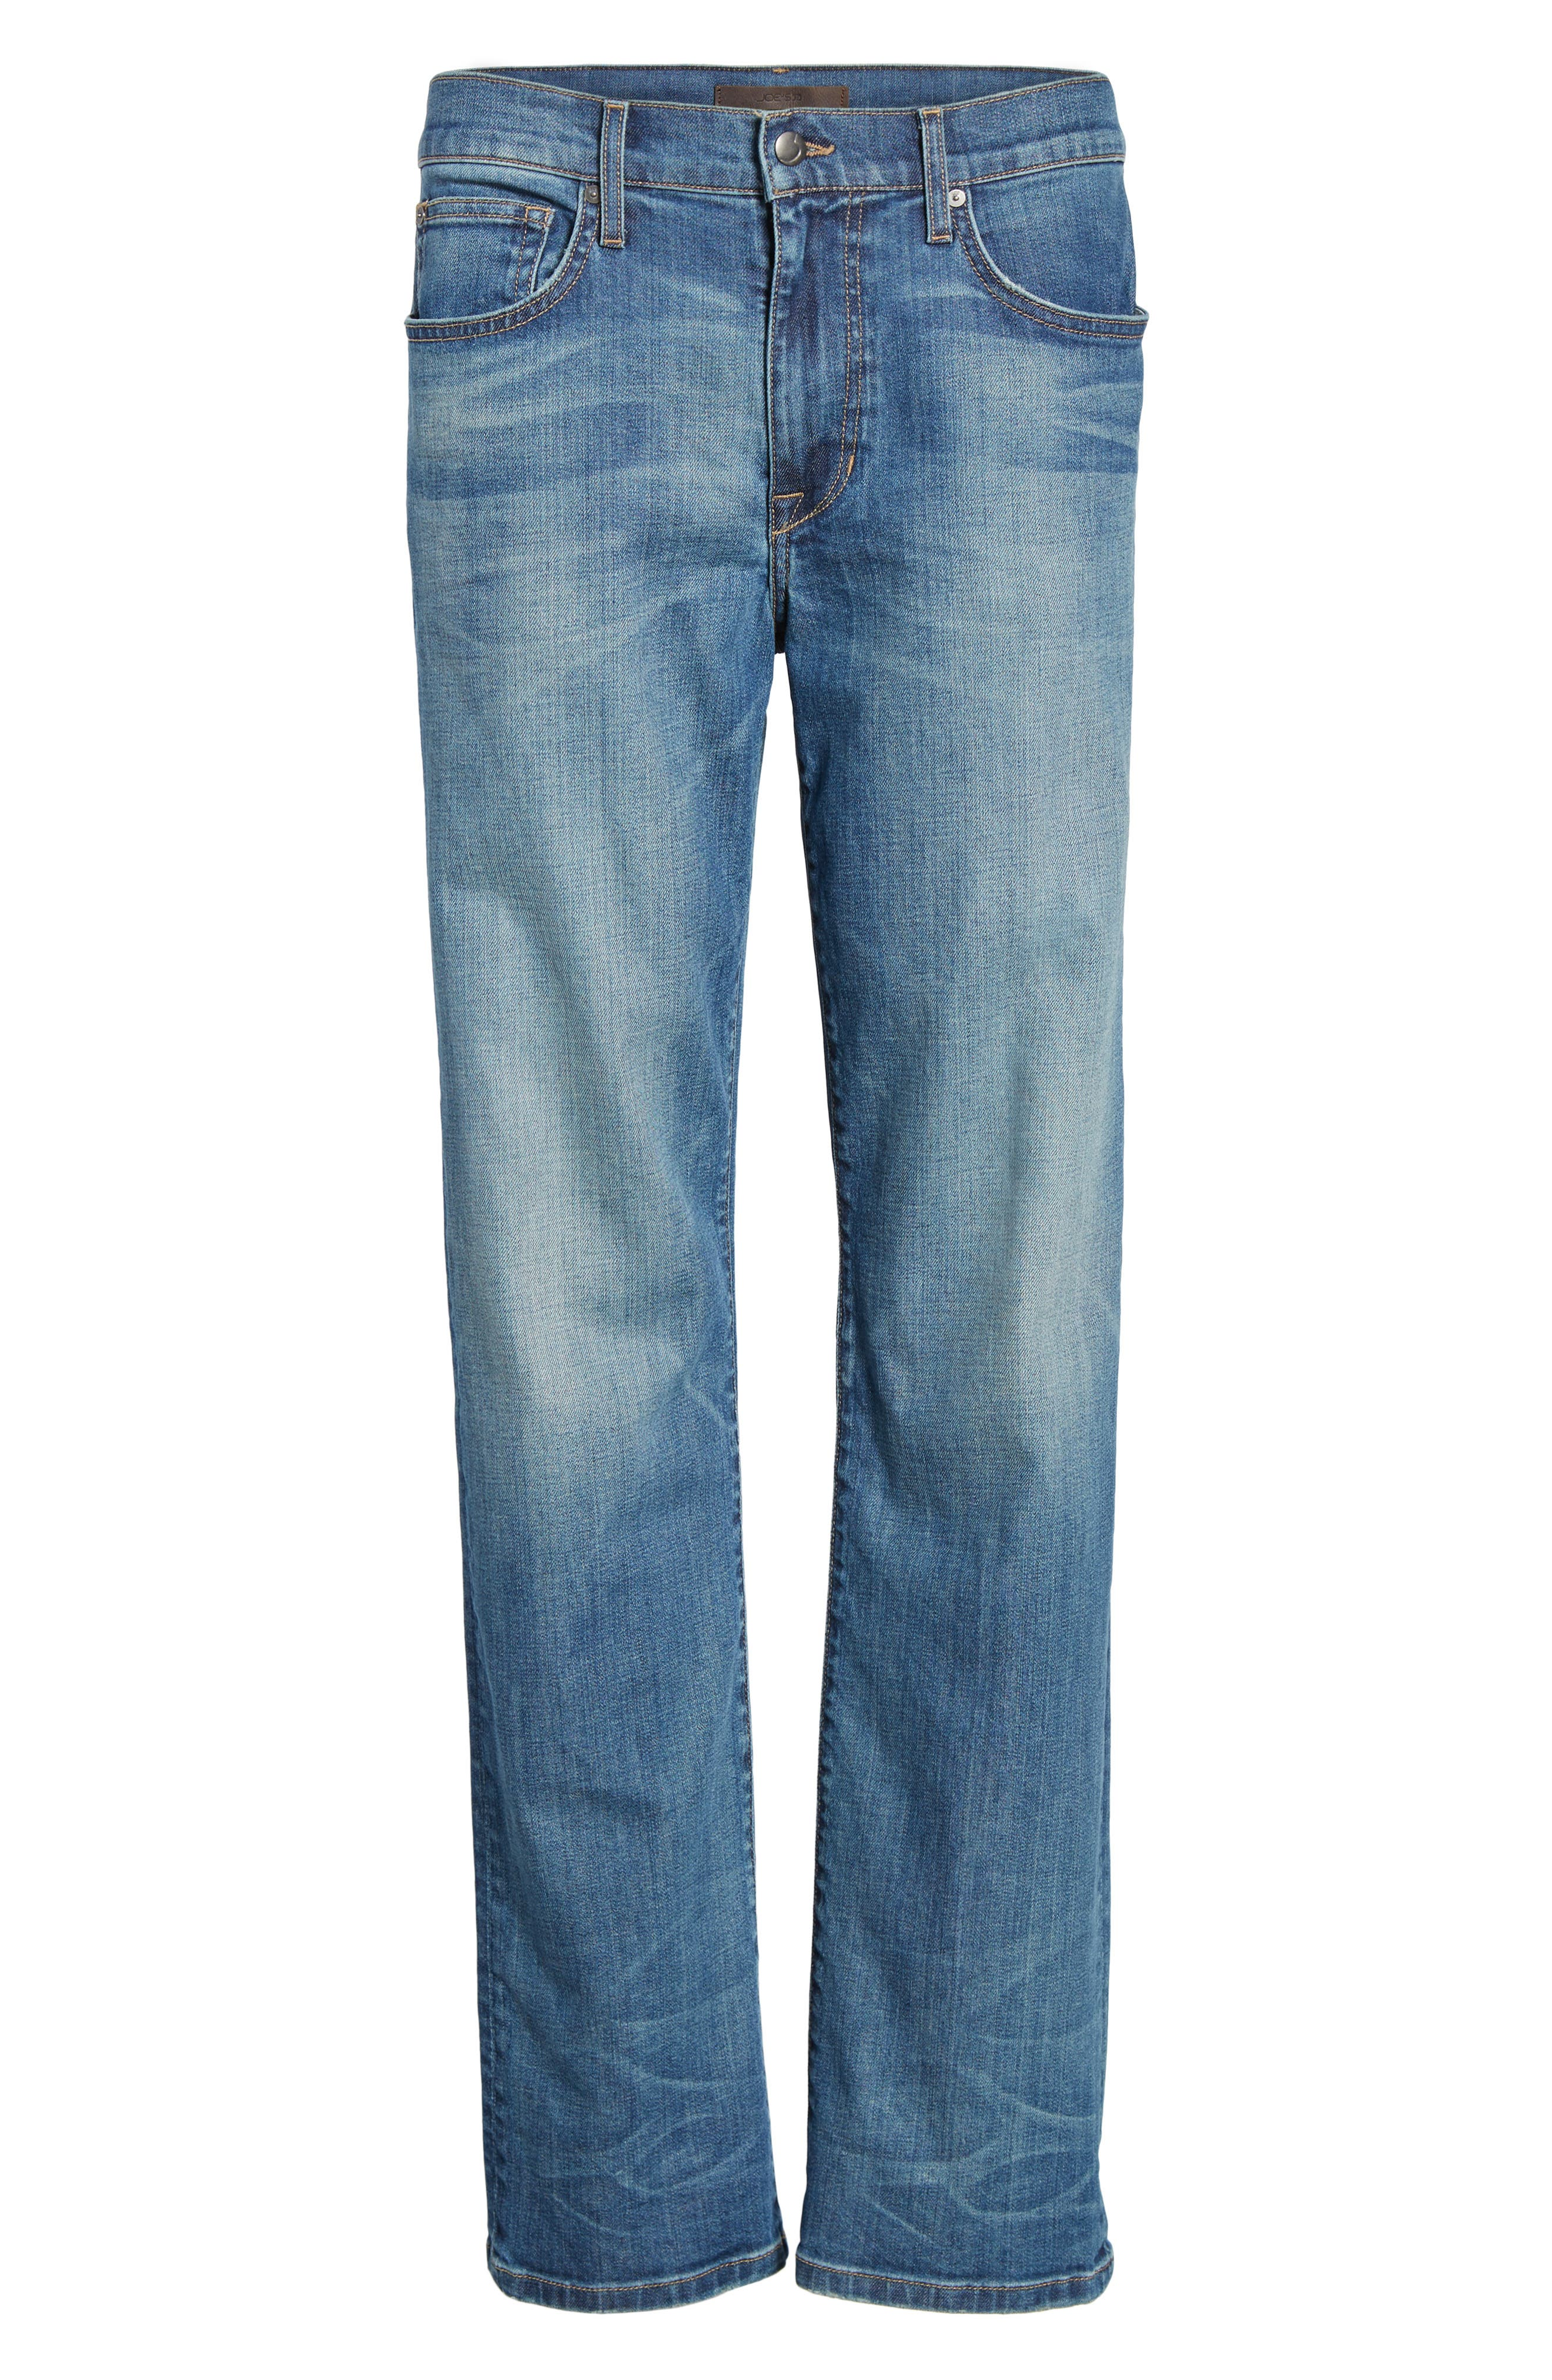 Classic Straight Fit Jeans,                             Alternate thumbnail 6, color,                             400